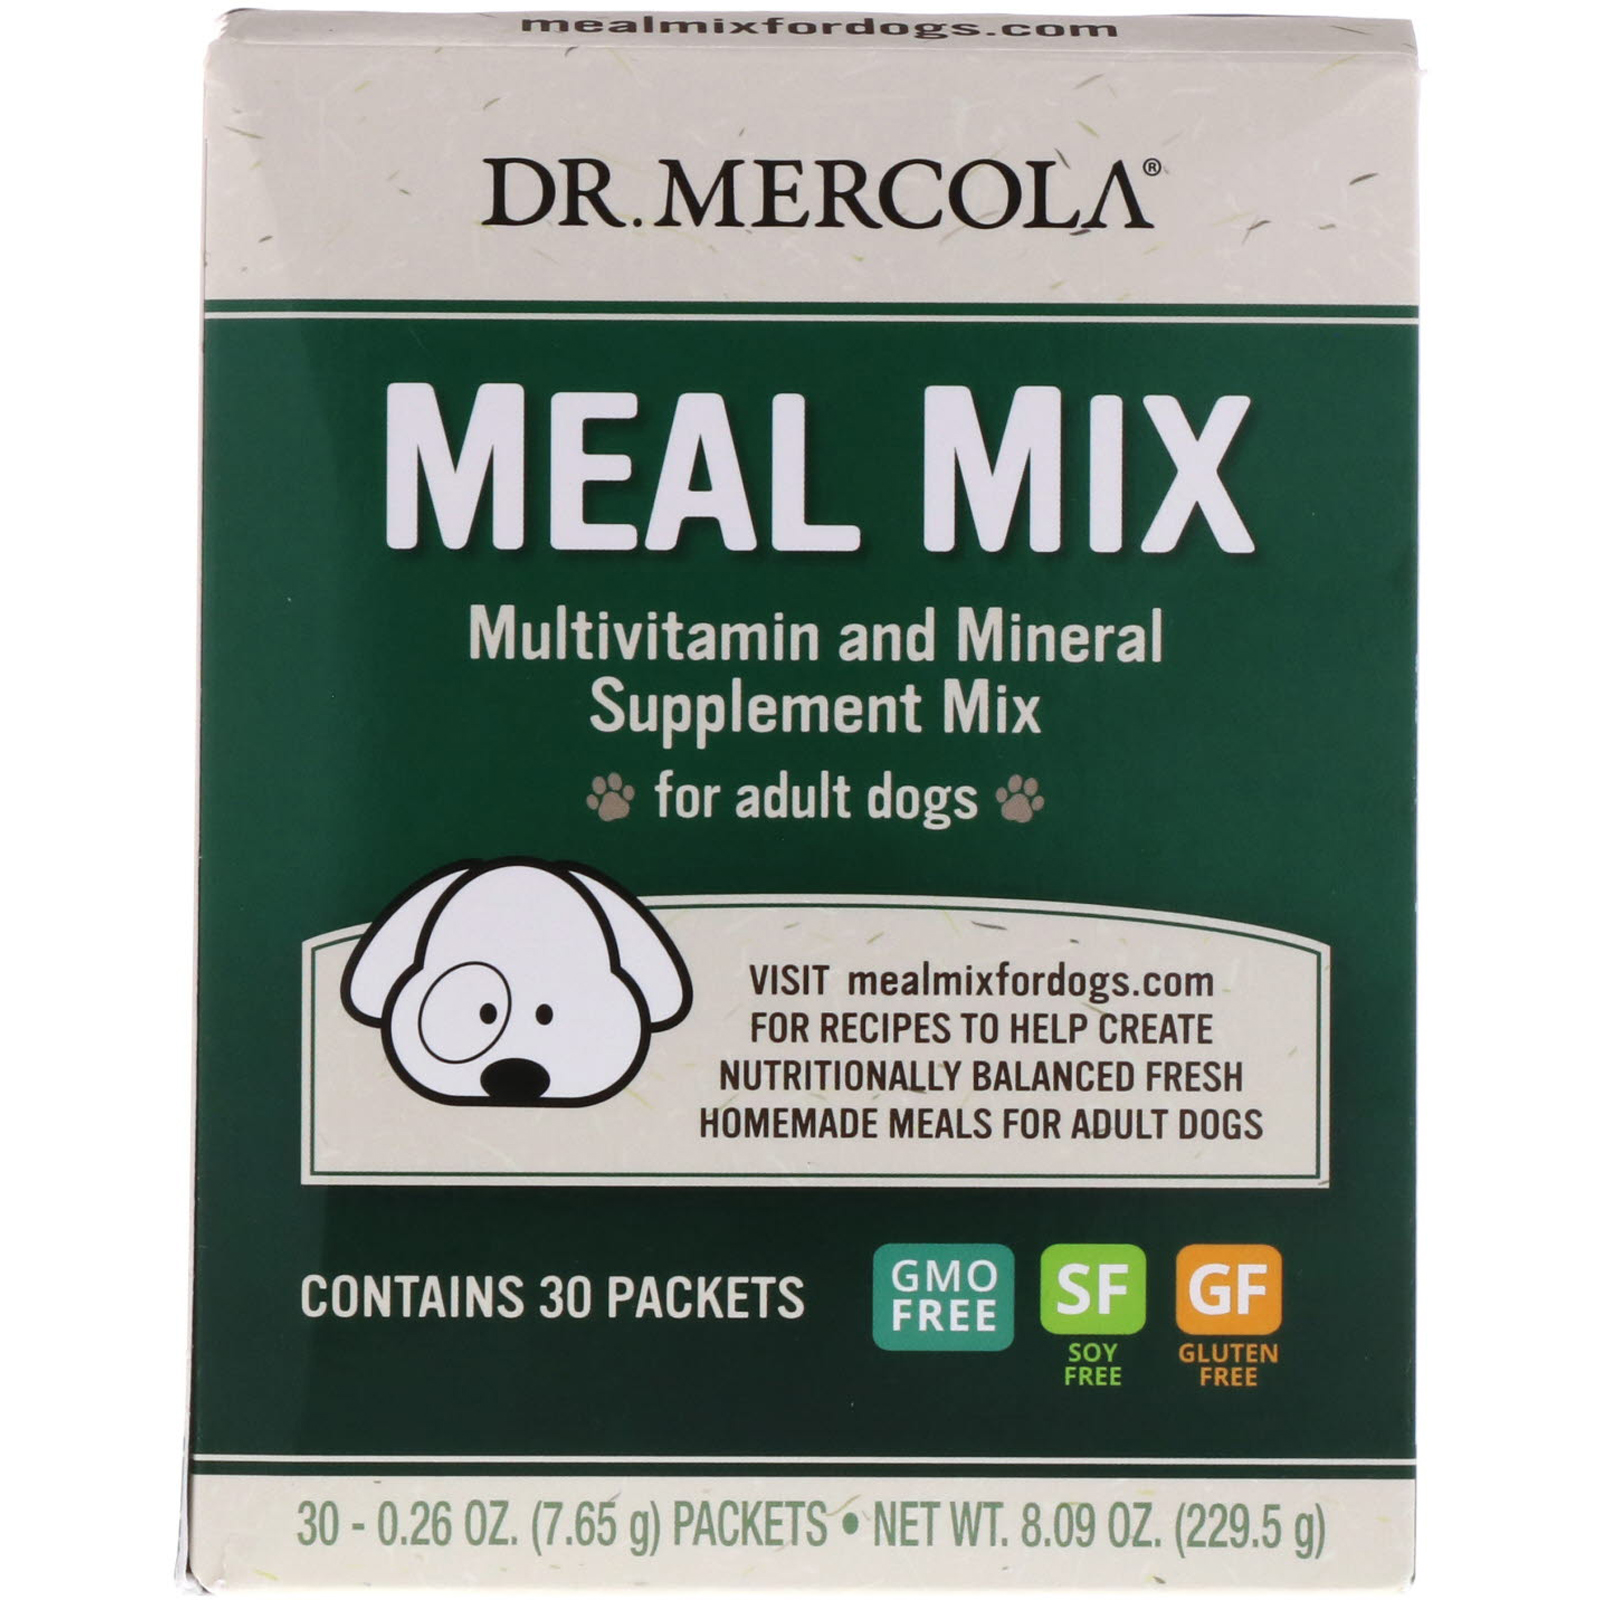 Dr. Mercola, Meal Mix, Multivitamin and